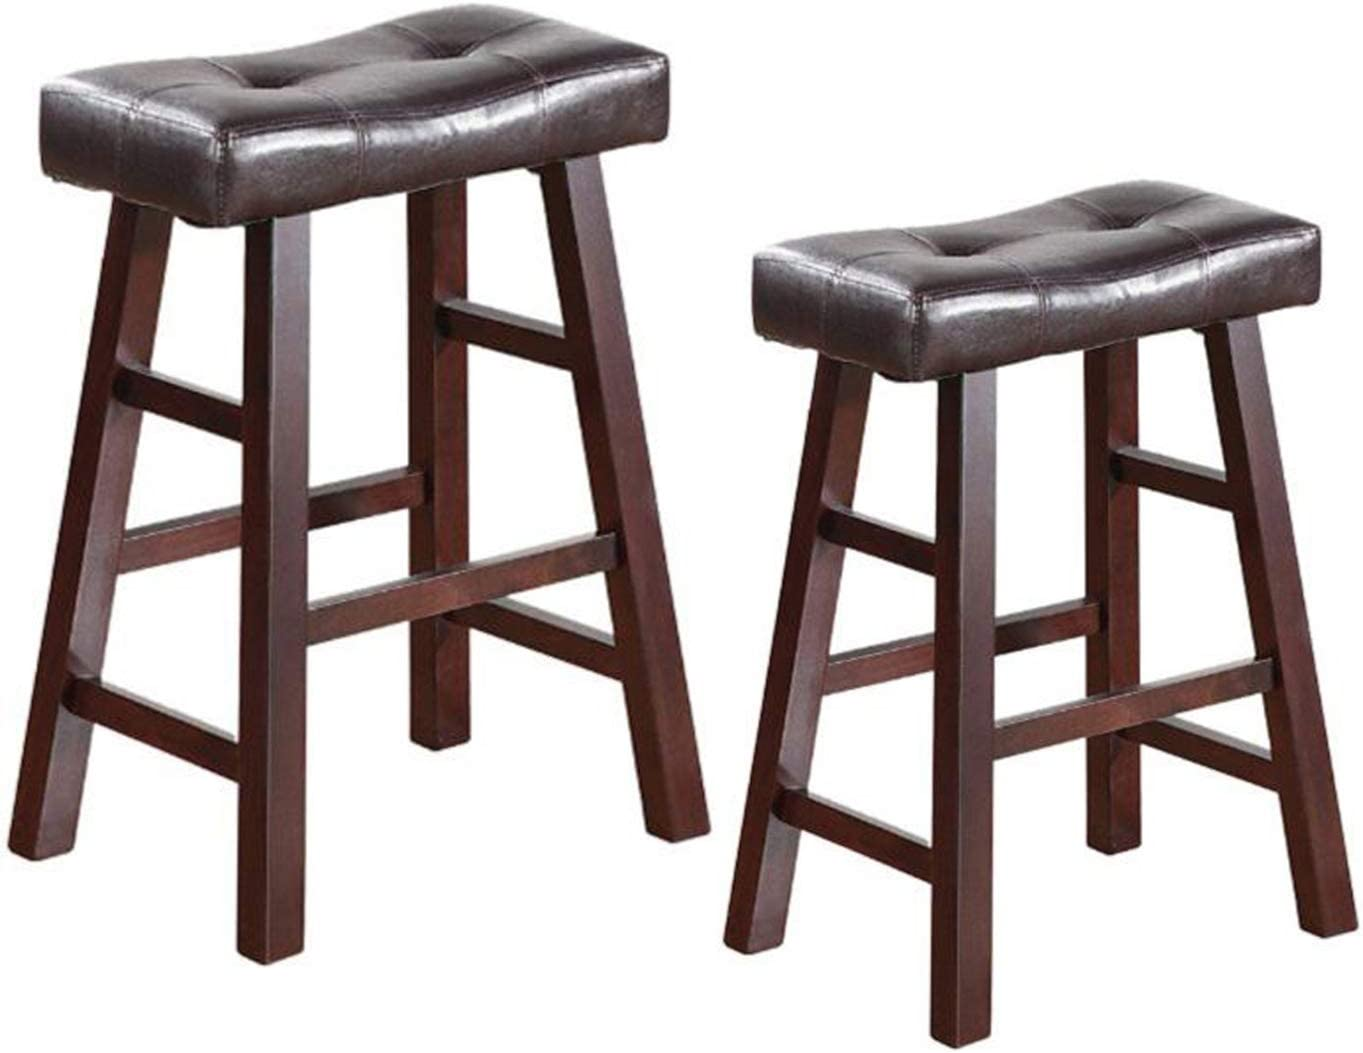 Legacy Decor Pair of 24 or 29 Dark Espresso Wood Barstools Wrapped in Espresso Bonded Faux Leather 24 HIGH